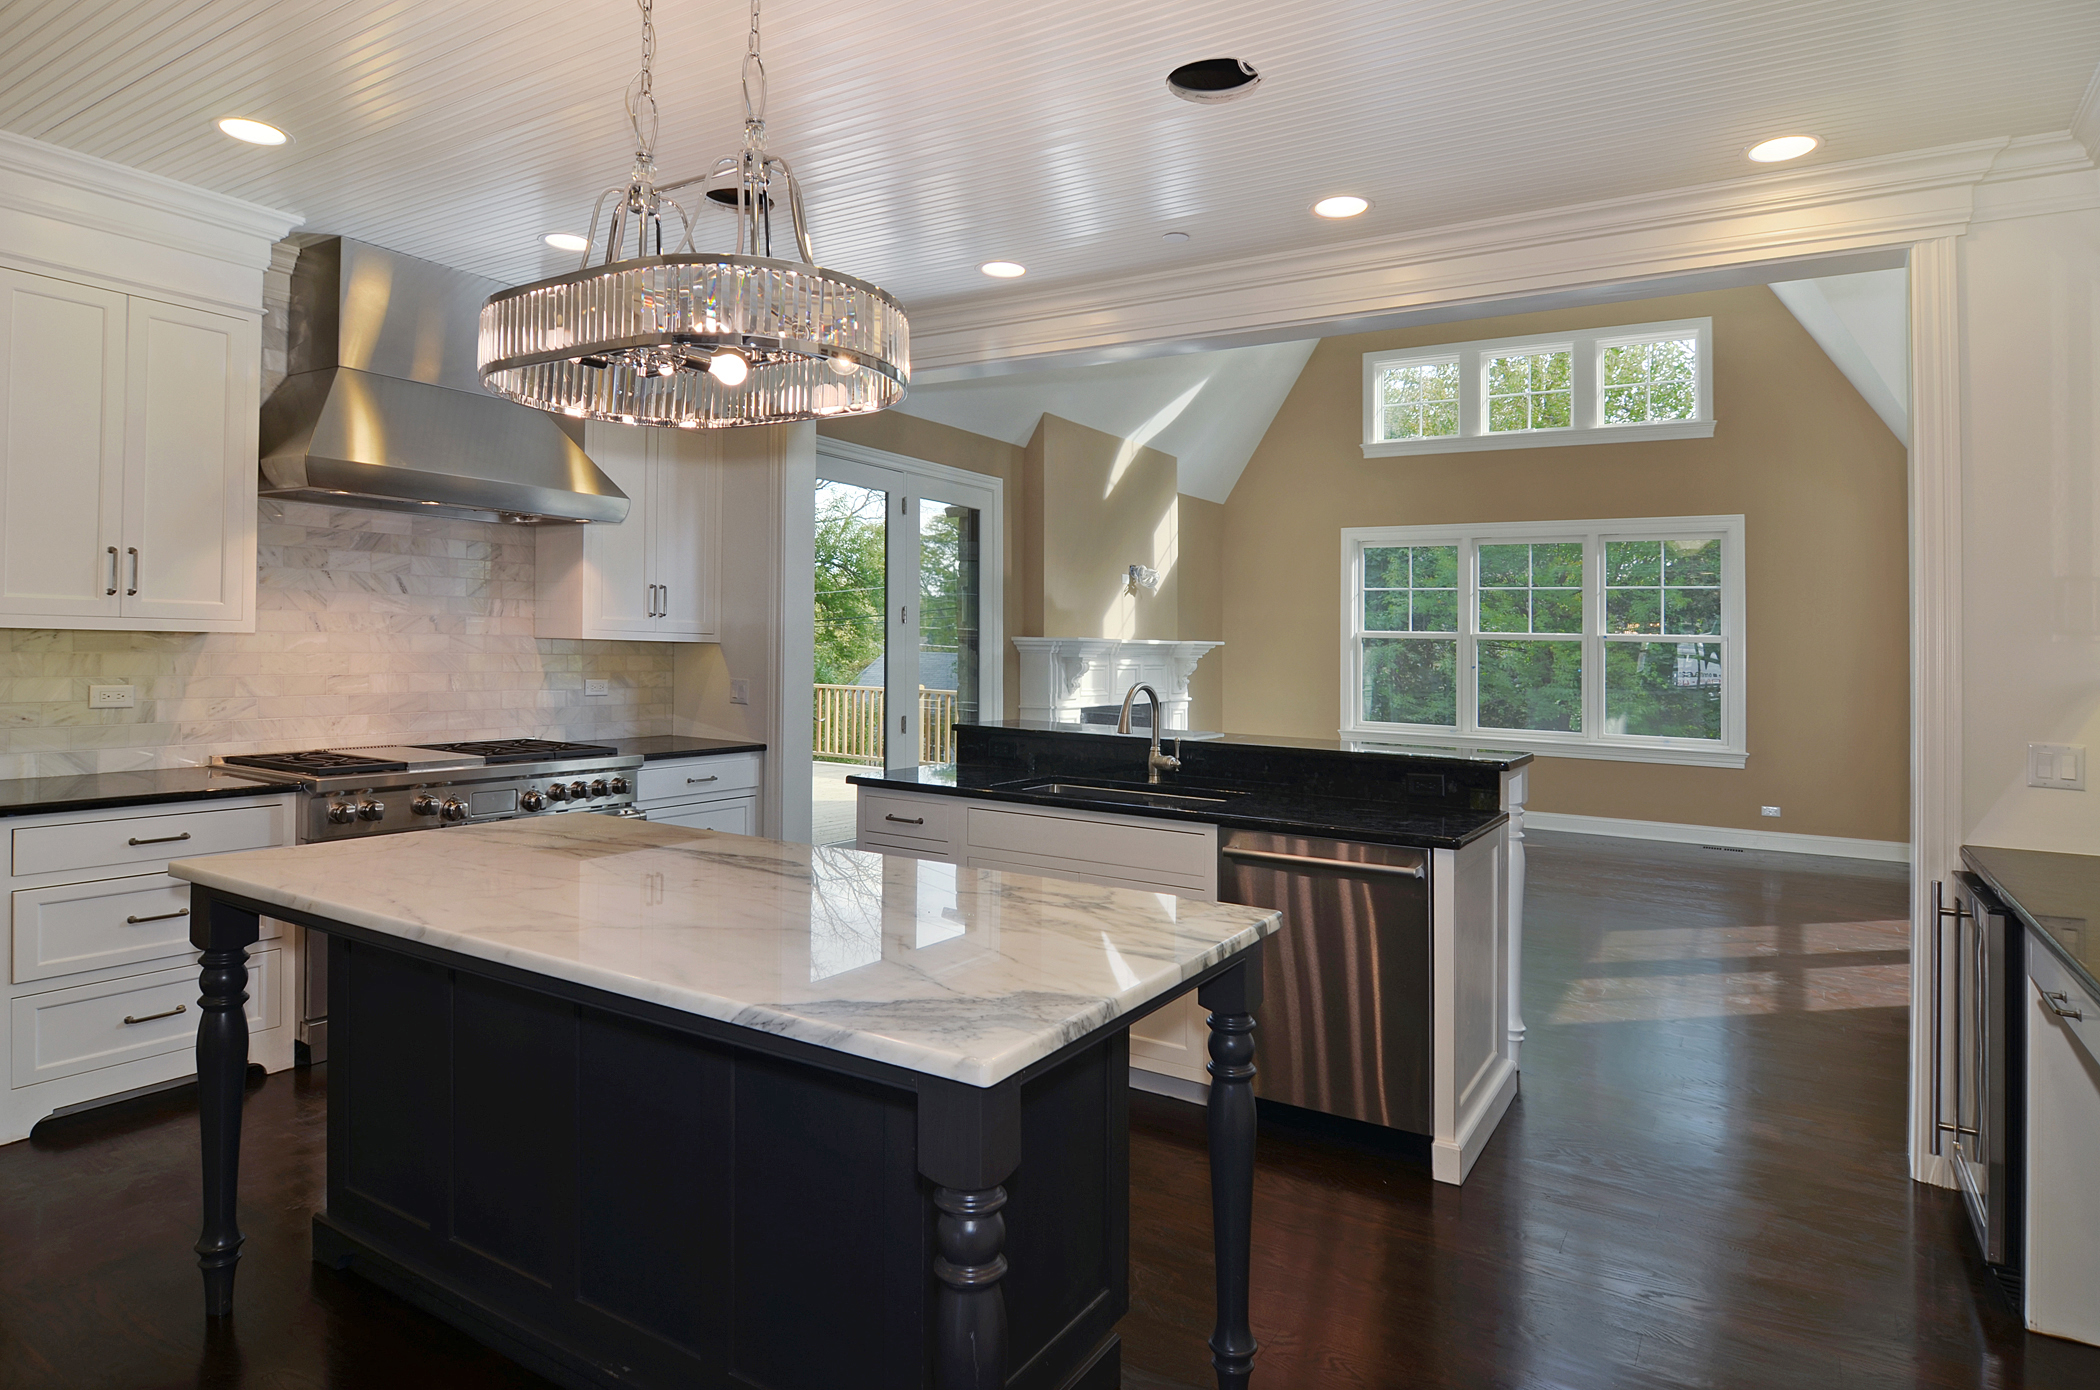 Rite-Way Kitchen with Opening into Dining Area